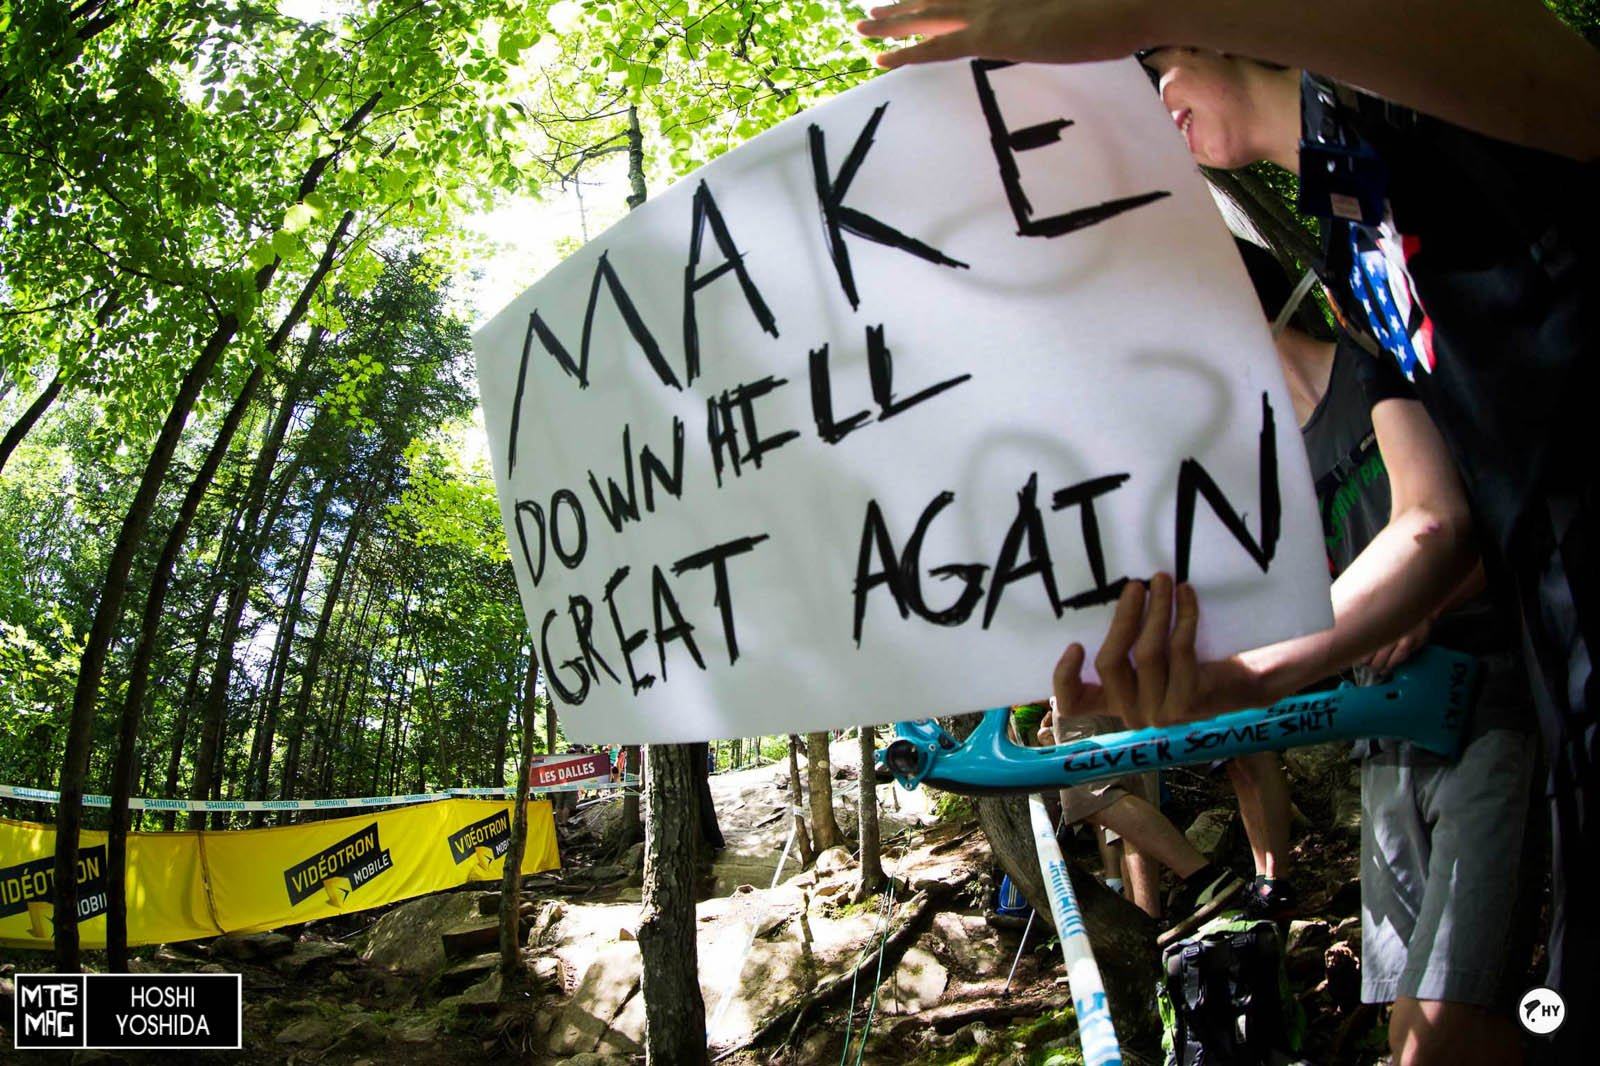 Classic witty downhill fans.